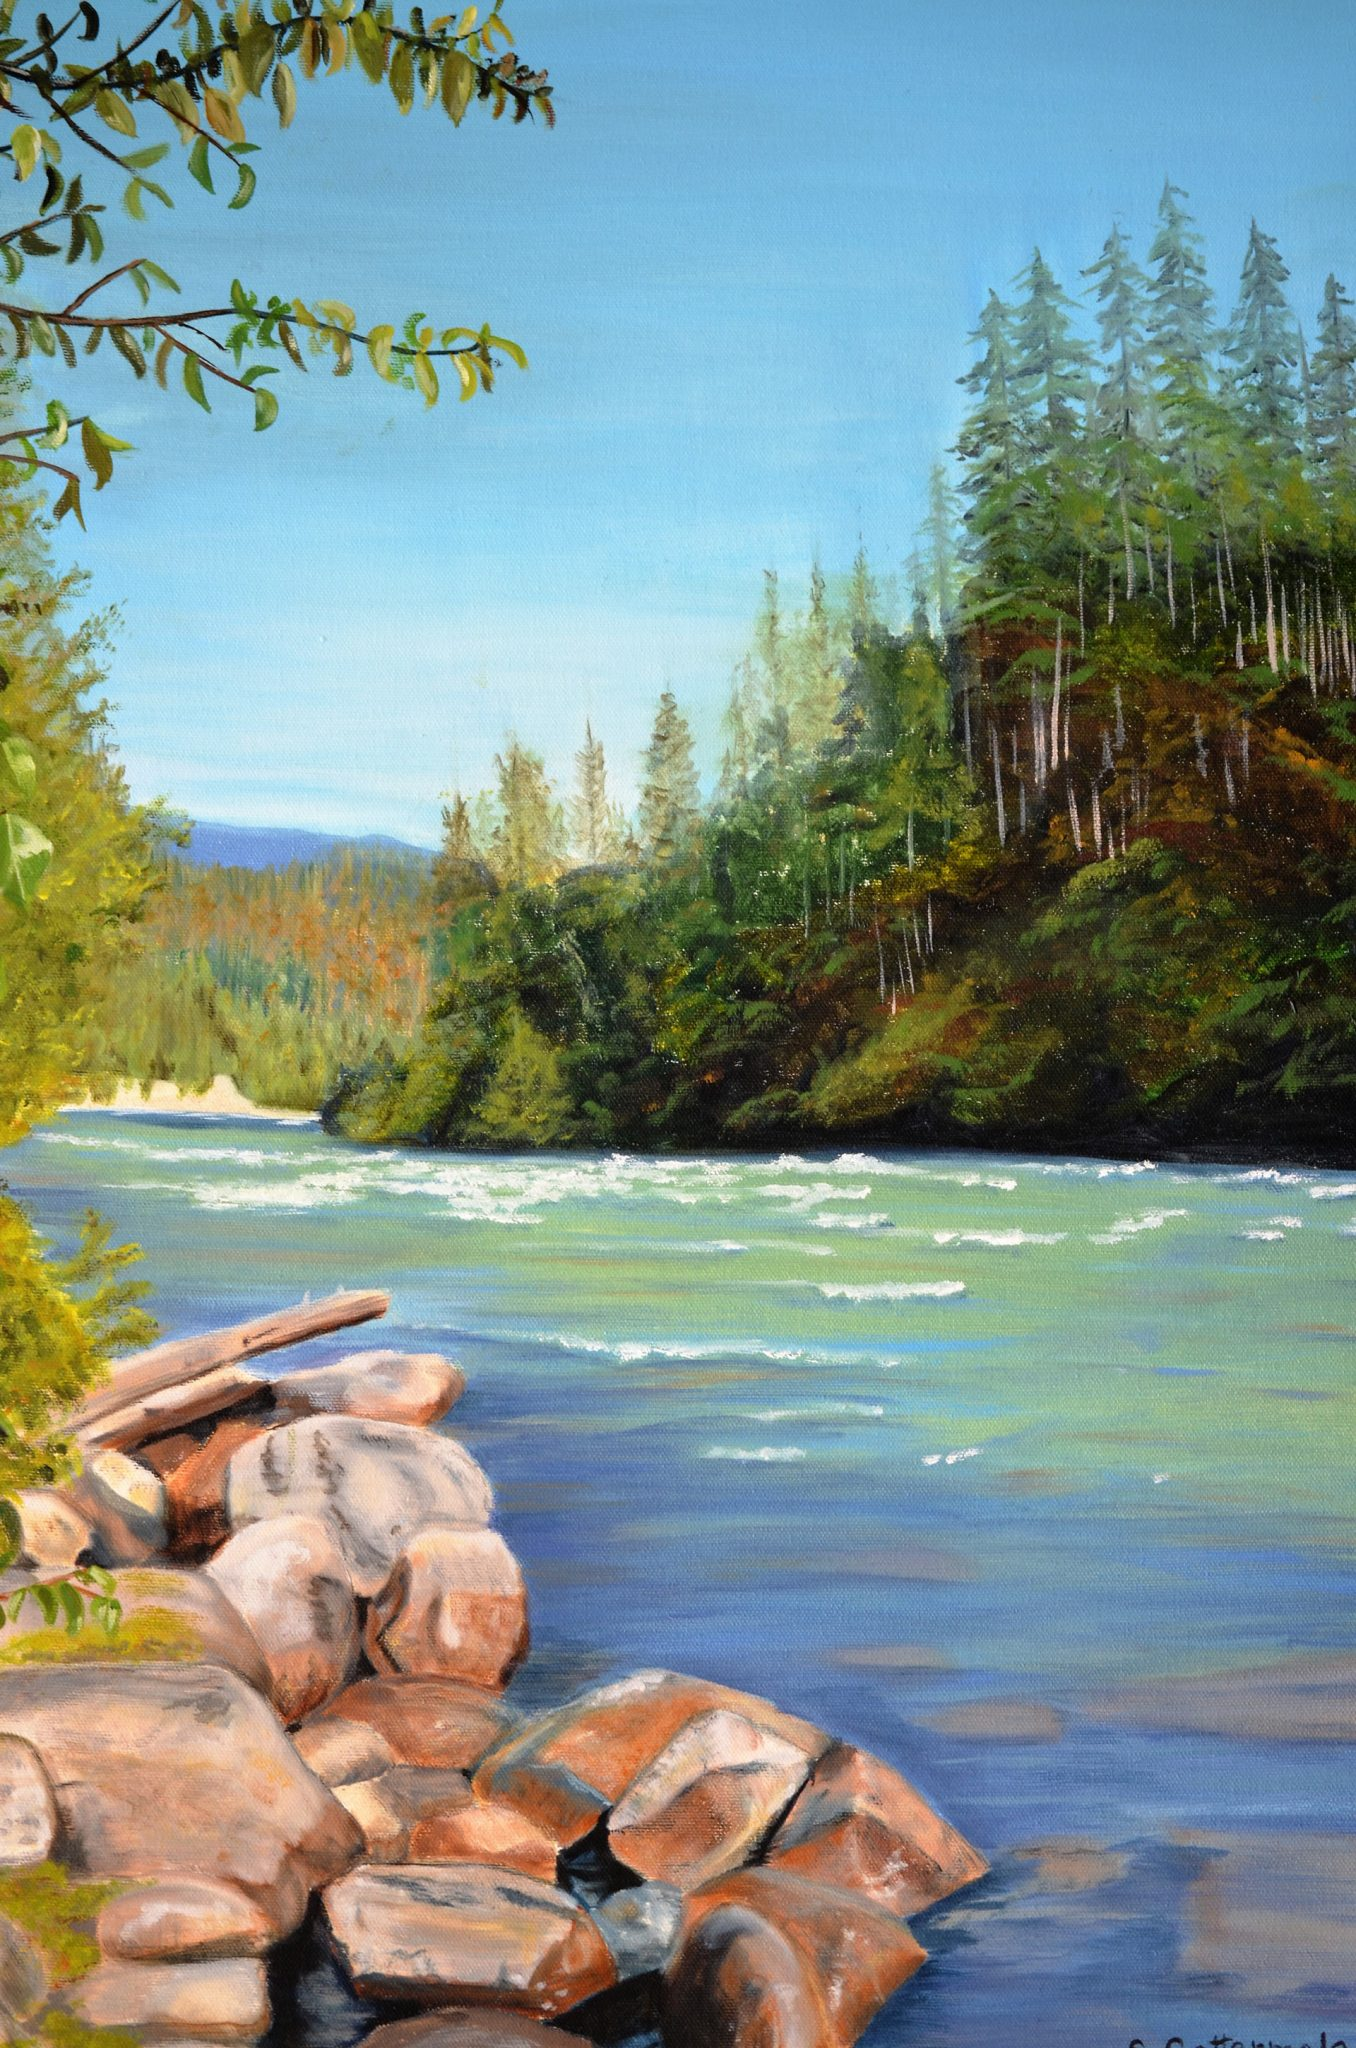 Nahatlatch-River - Painting by Sandra Cattermole